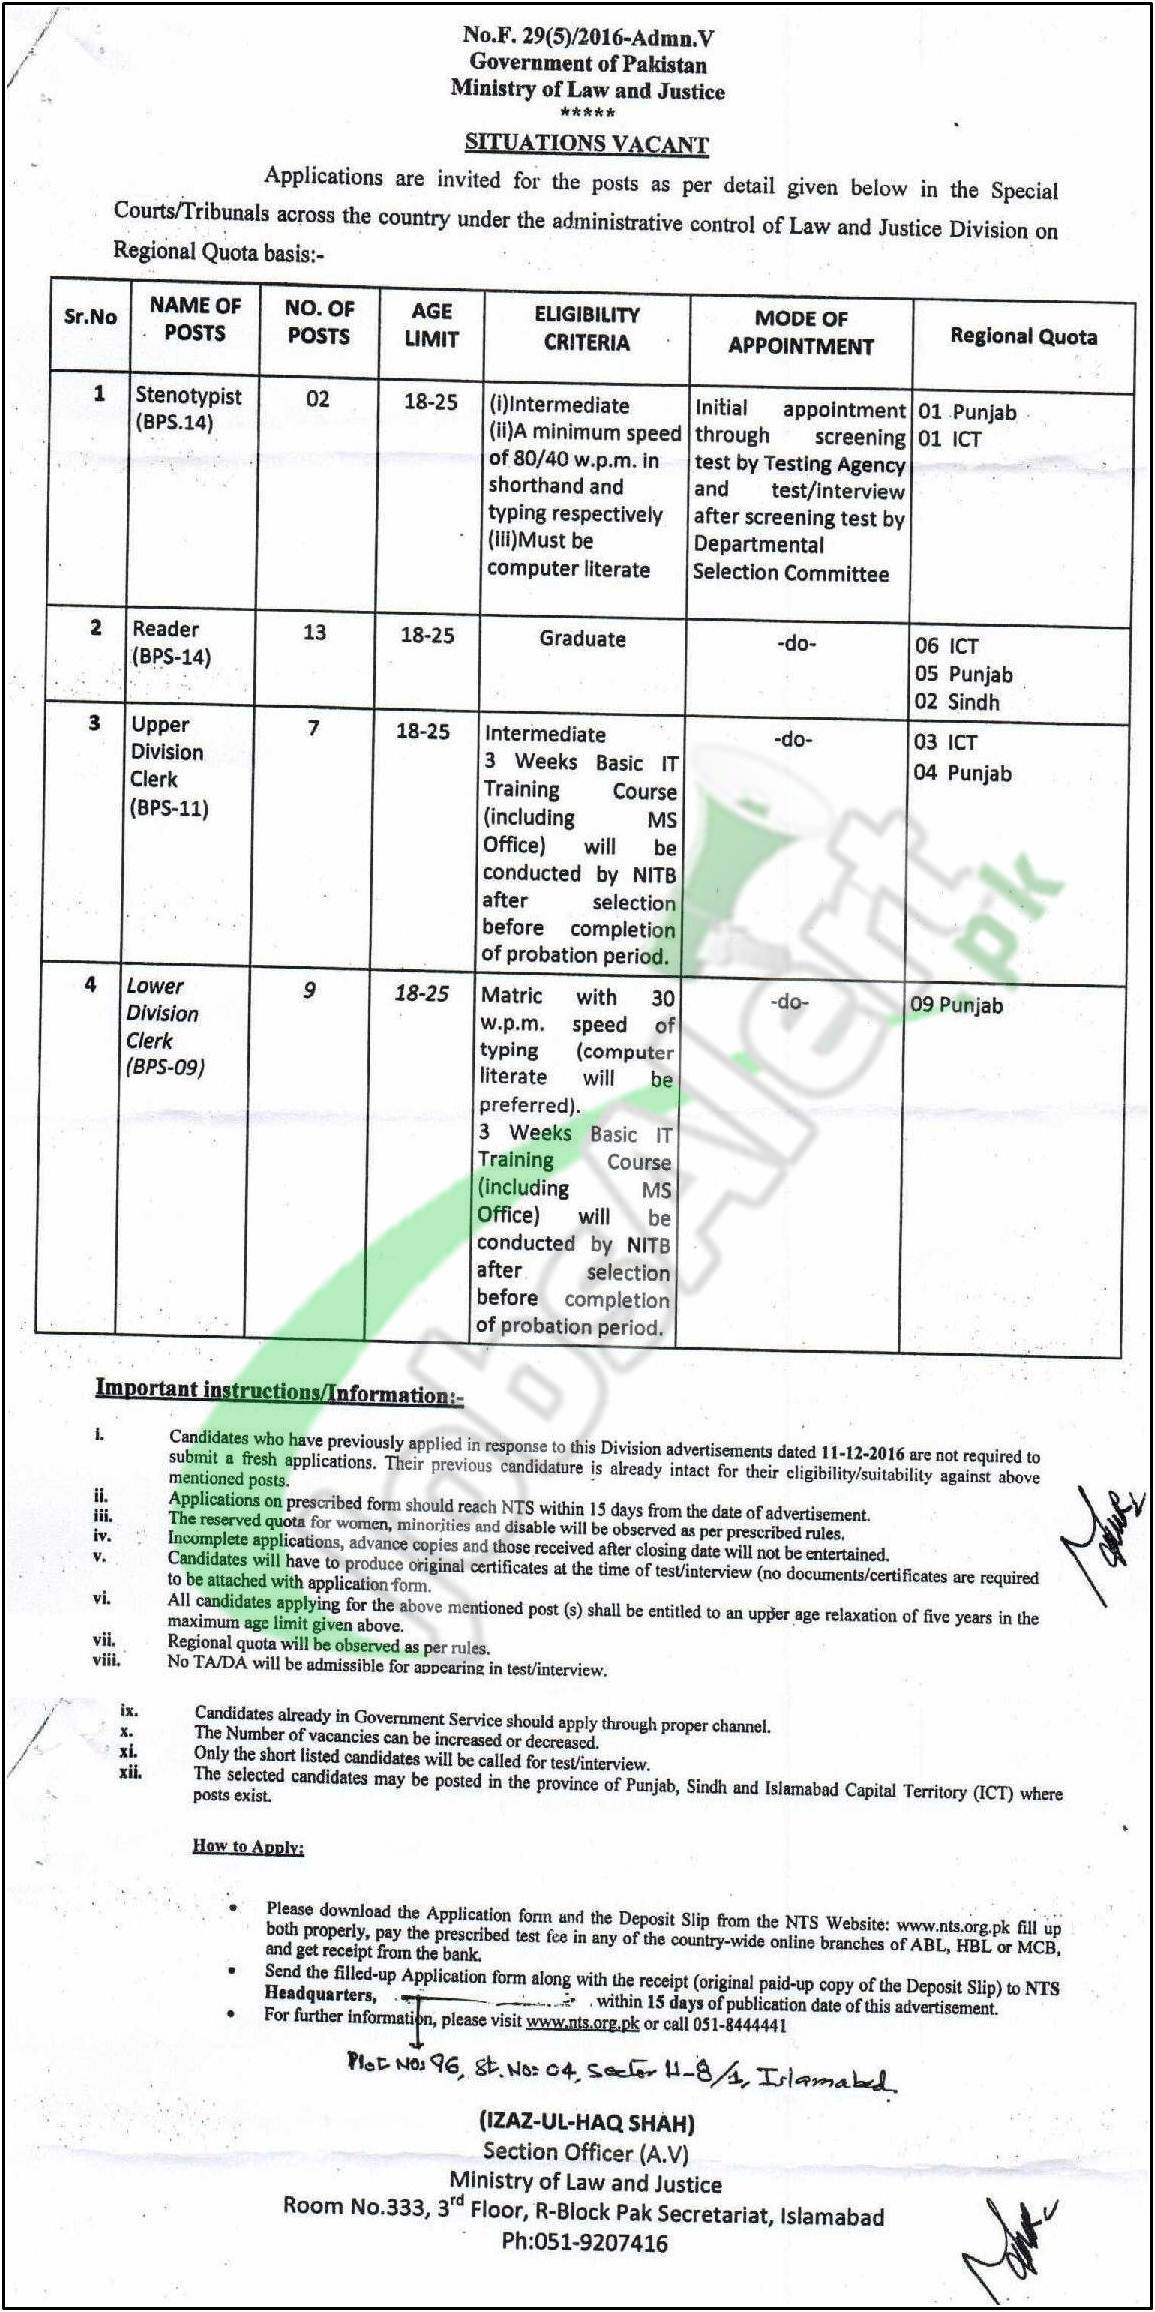 Molaw jobs application form download 2017 ministry of law view full size click here falaconquin